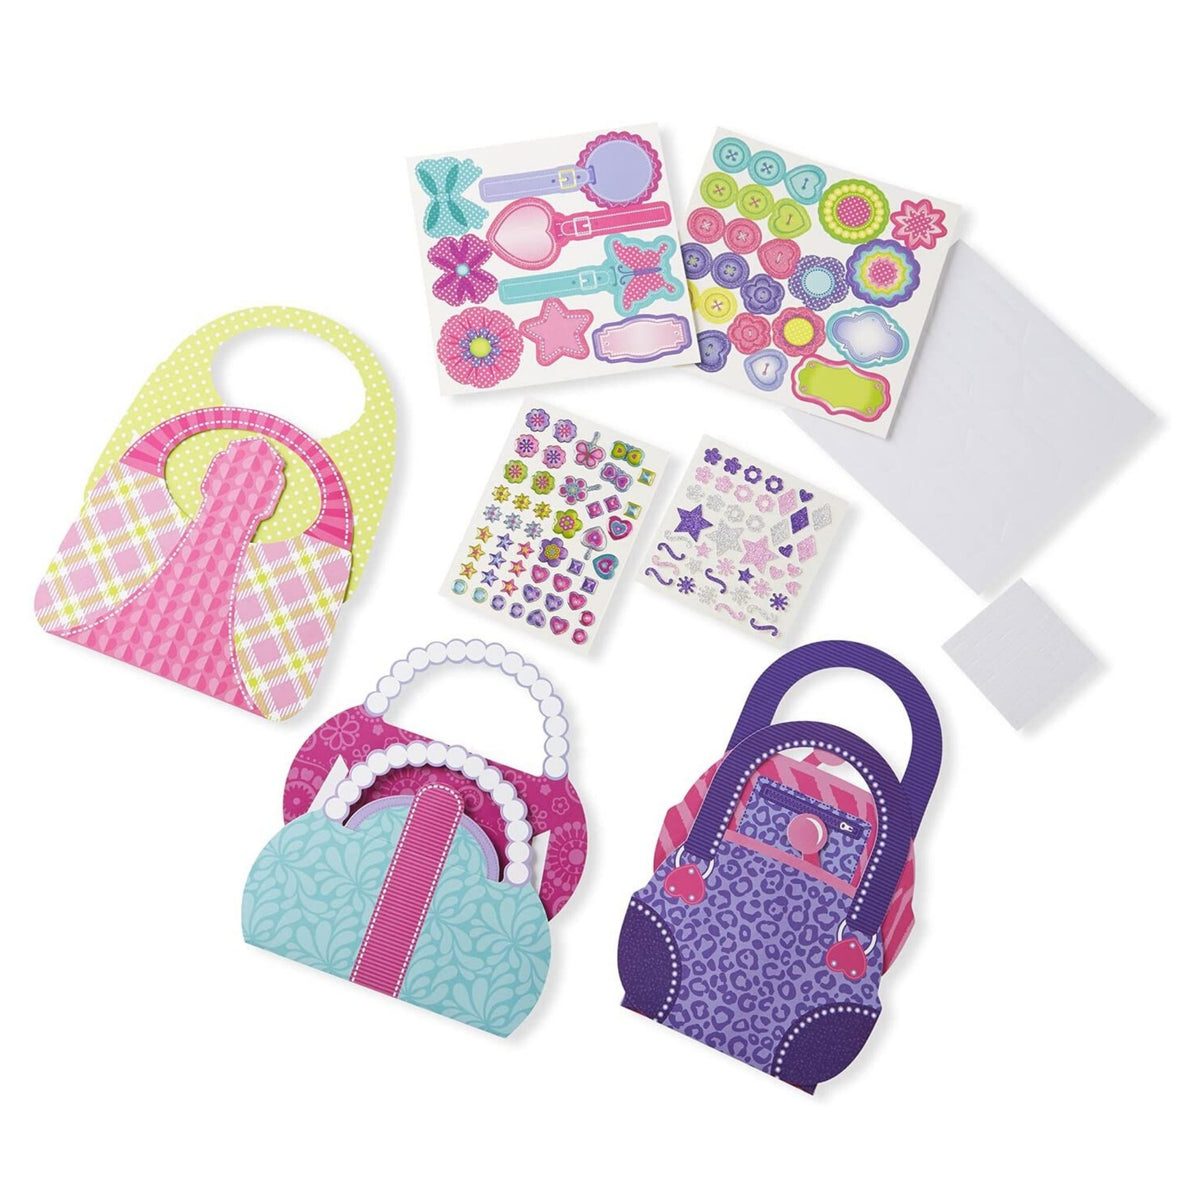 Melissa & Doug Simply Crafty - Precious Purses